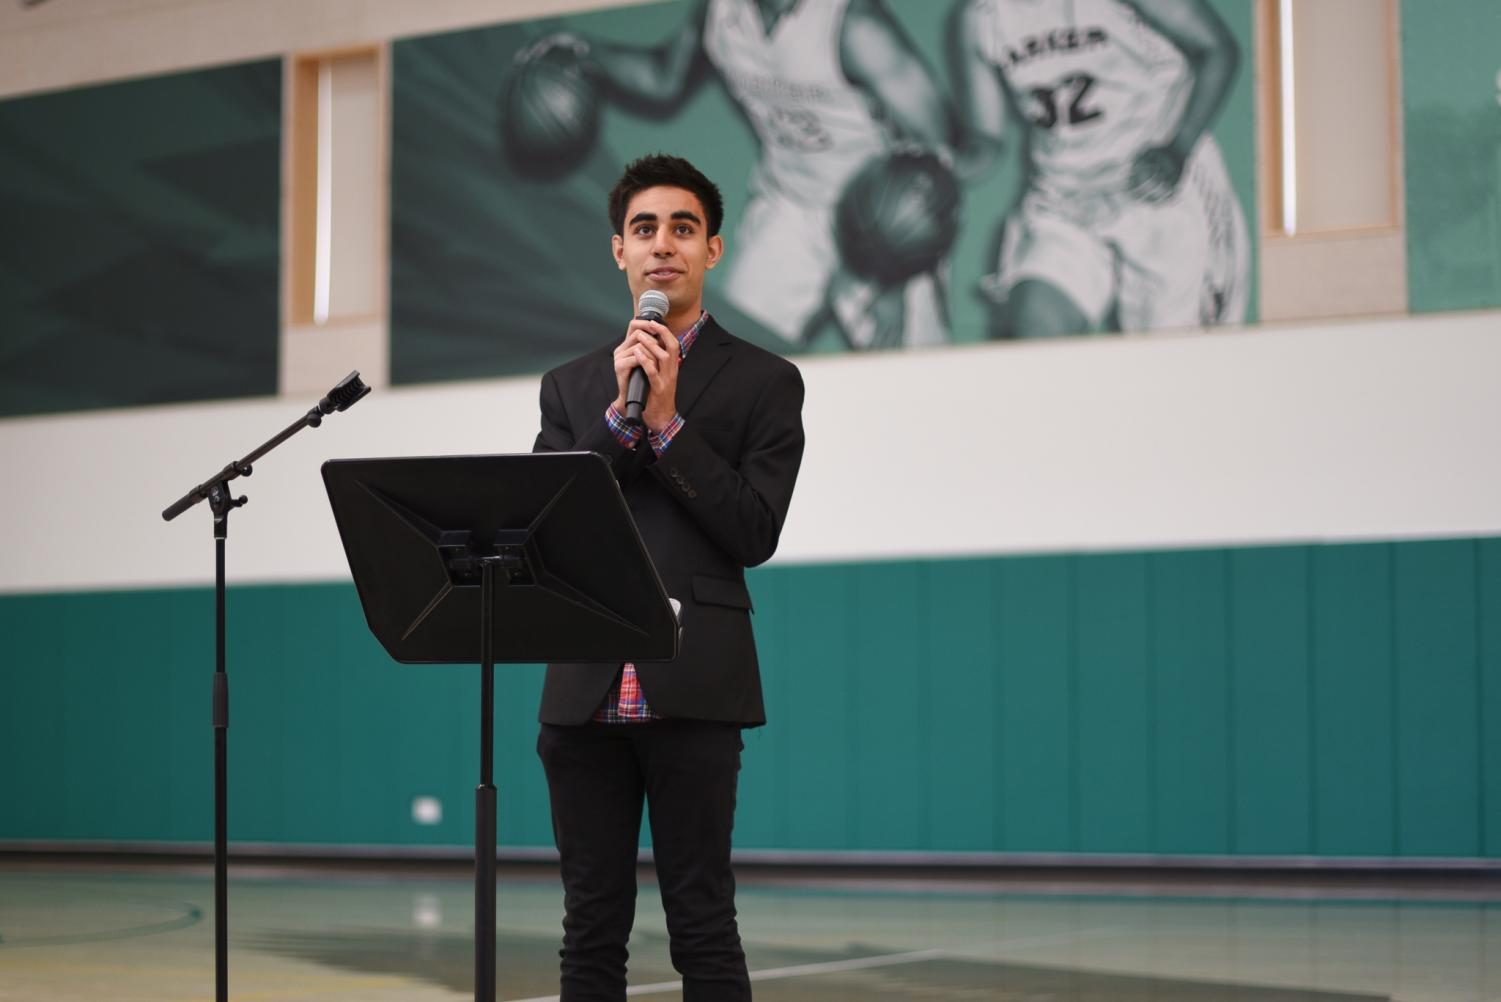 Avi Gulati (11), who is running uncontested for ASB president, delivers his speech to close out yesterday's assembly. Avi and five other juniors are running for five positions on the ASB council next year.